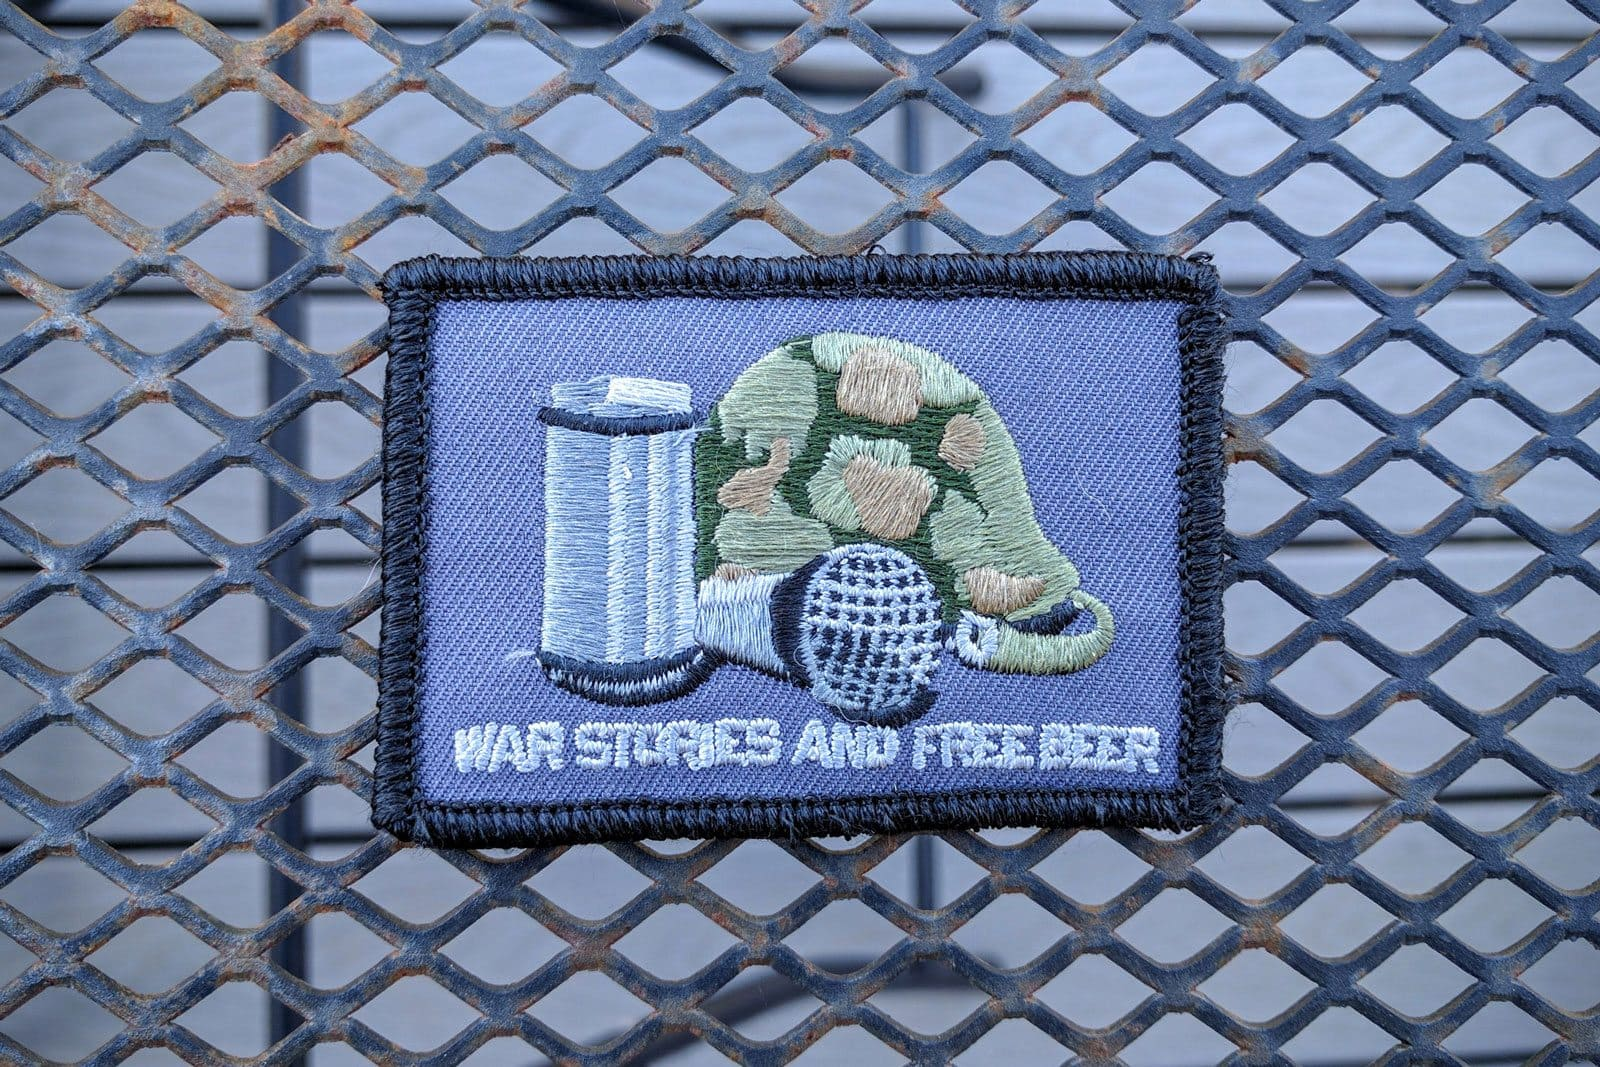 War-Stories-&-Free-Beer-Patch